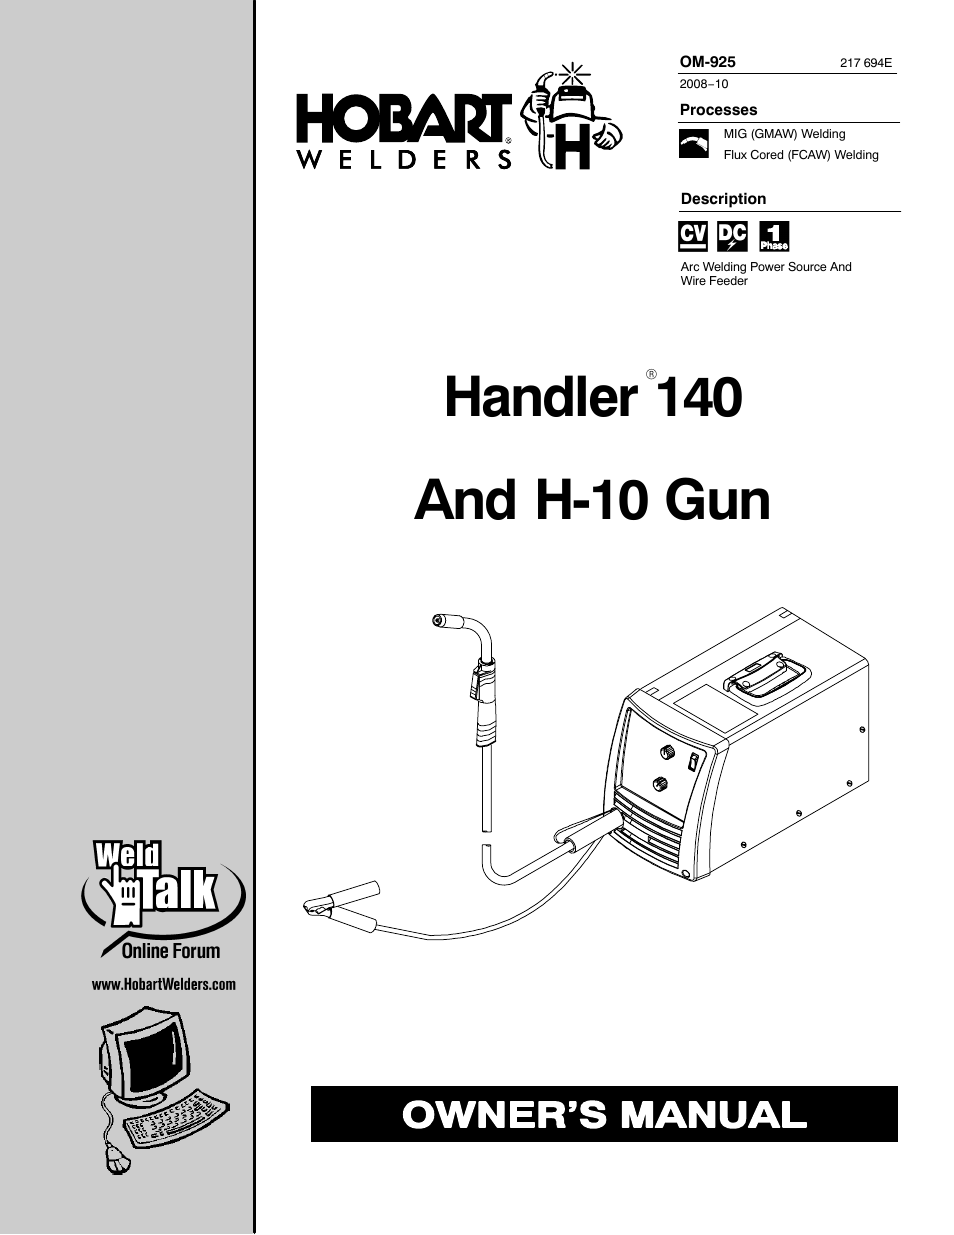 Hobart Welding Products HANDLER 140 OM-925 User Manual